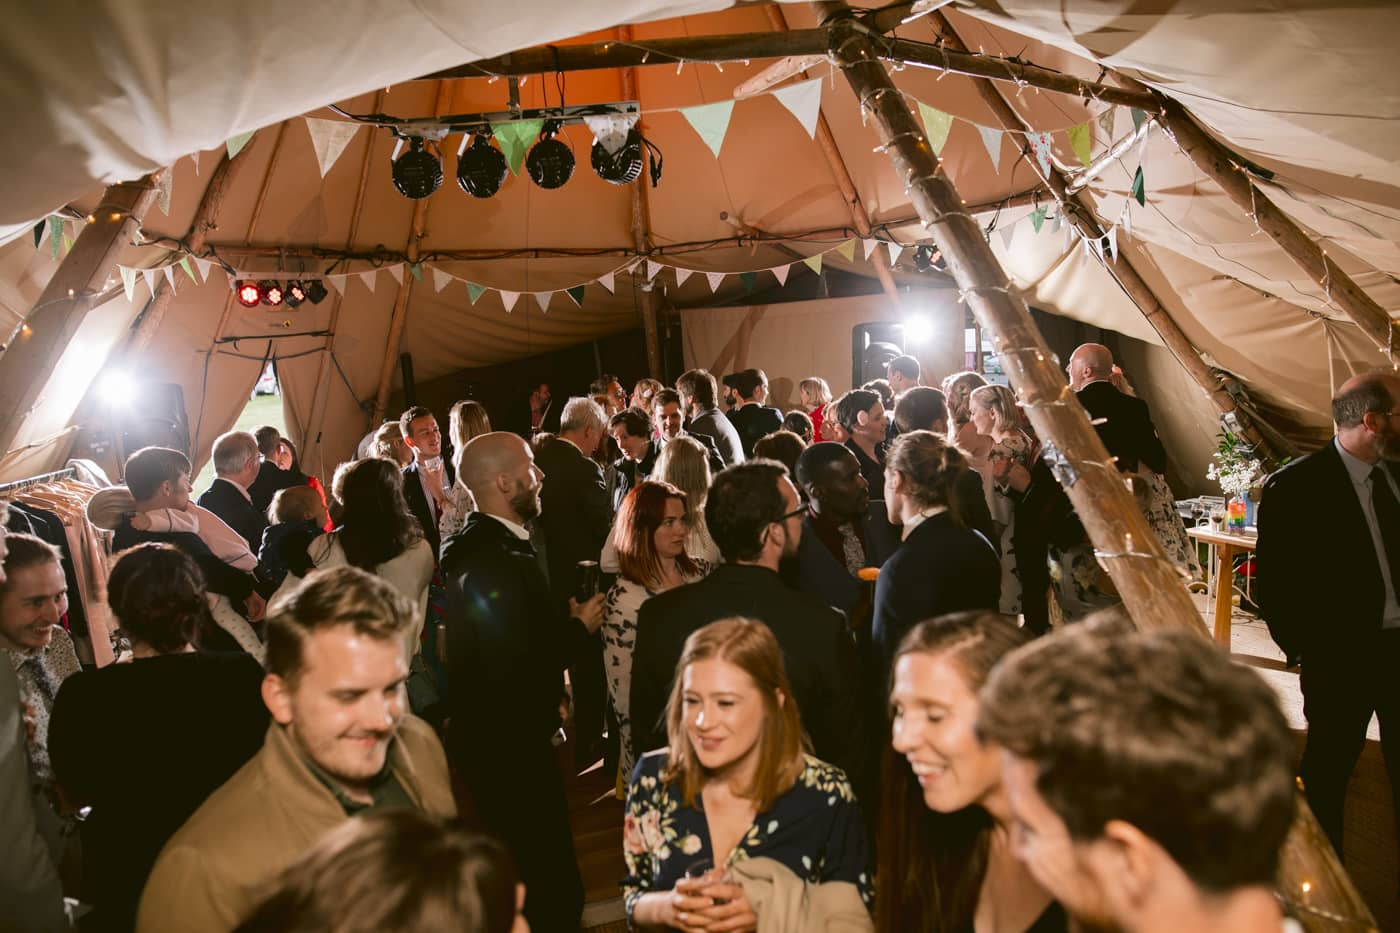 Group Shot in Tipi of Guests Dancing